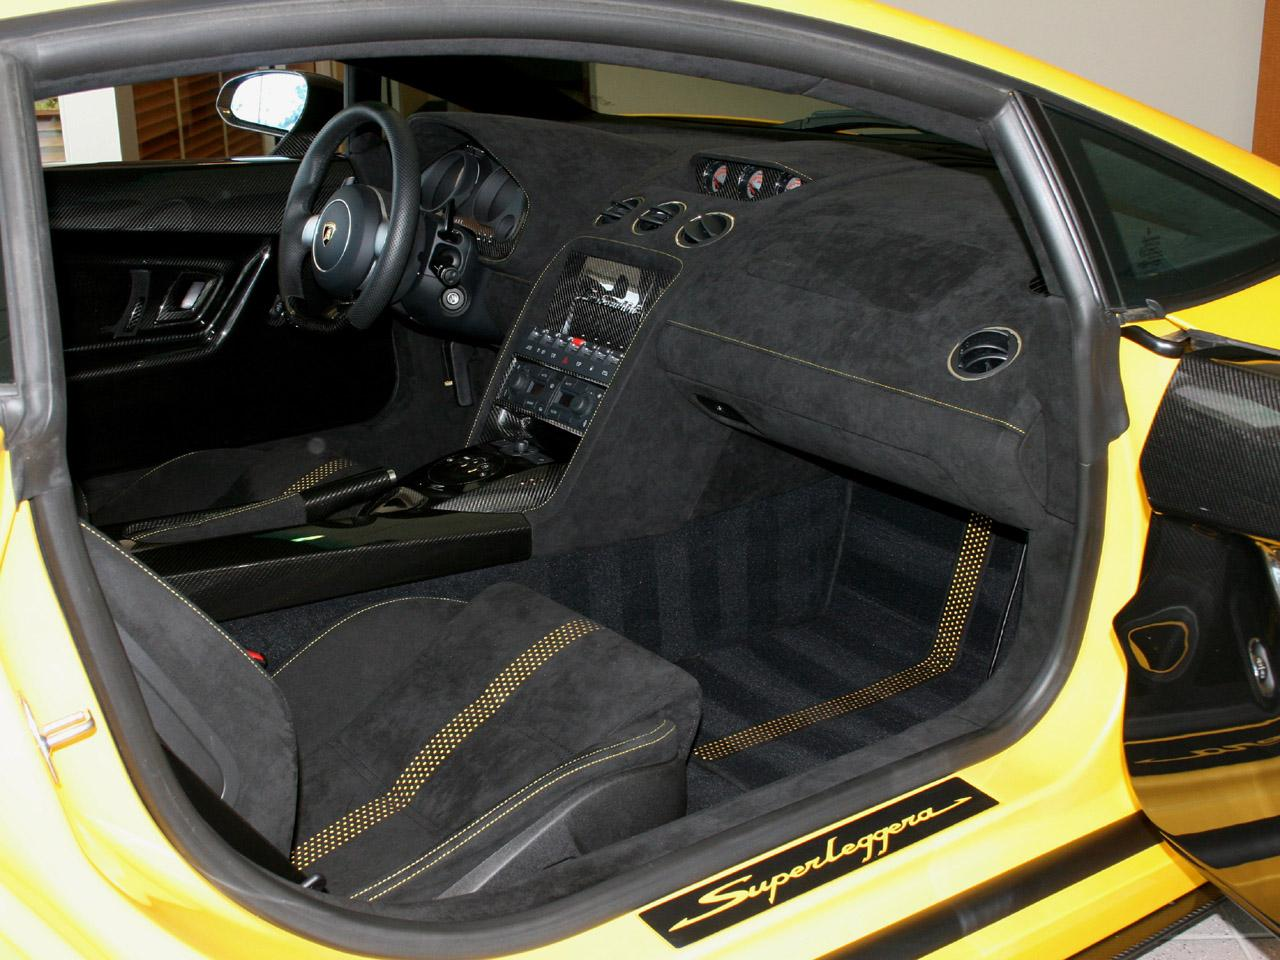 lamborghini gallardo superleggera interior. lamborghini gallardo superleggera interior r